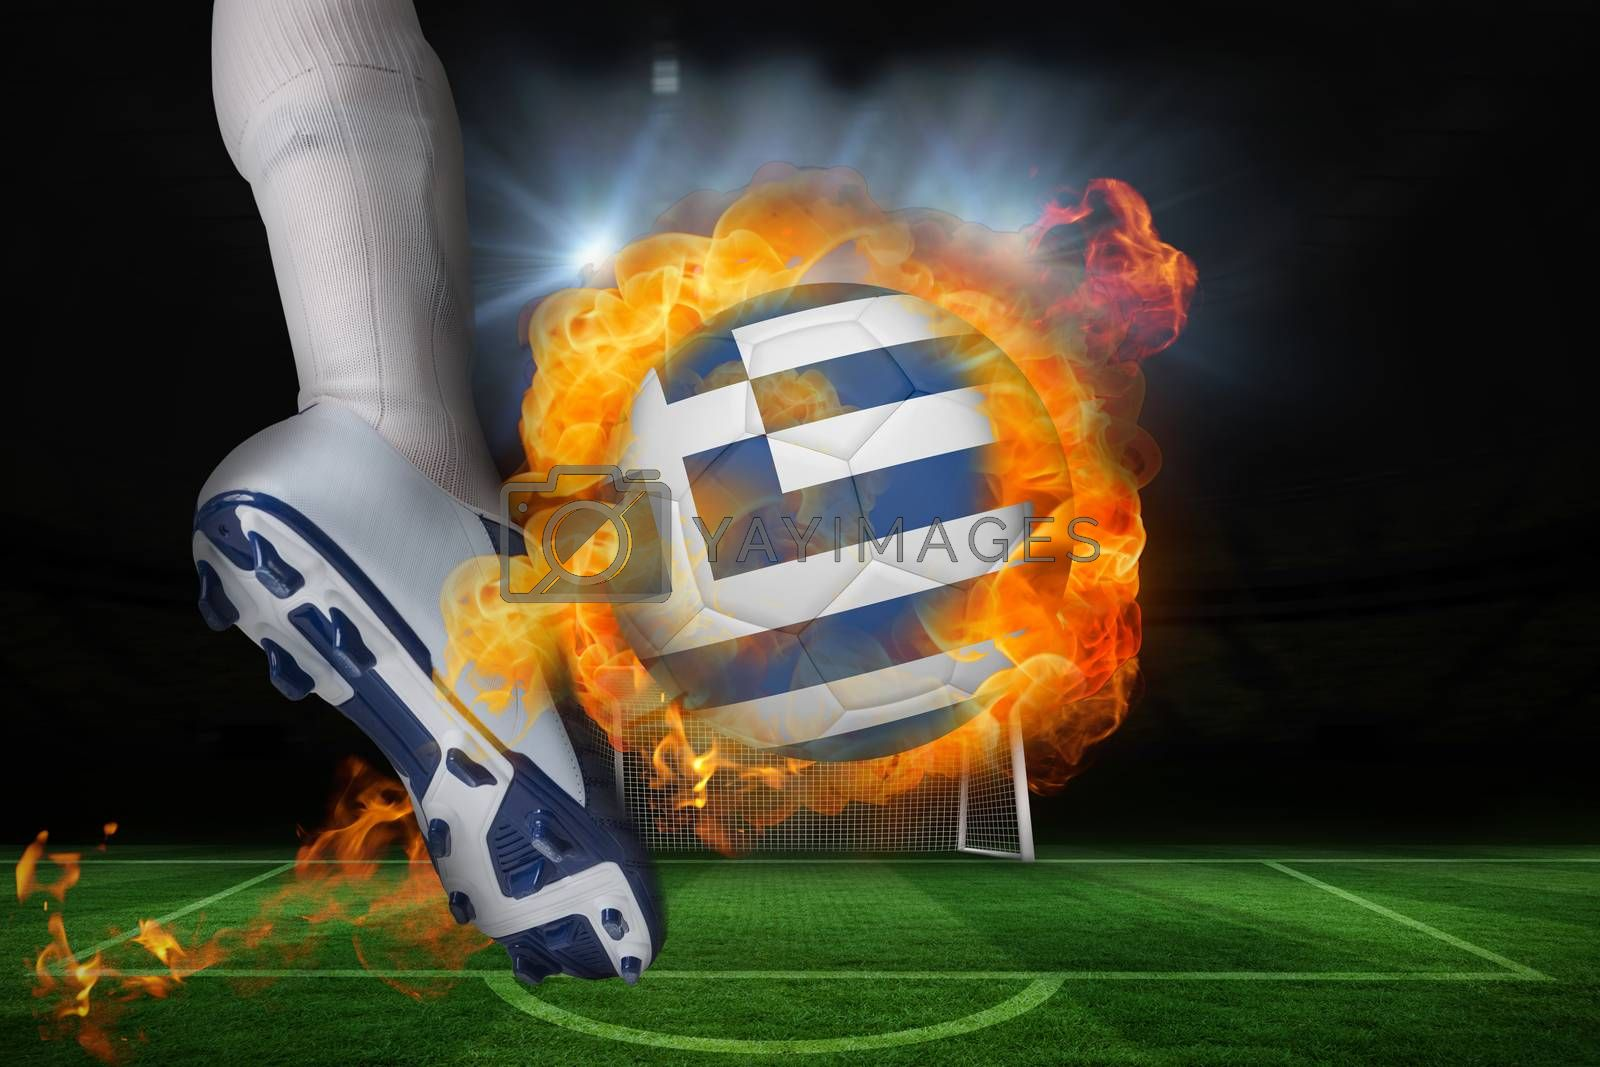 Football player kicking flaming greece flag ball by Wavebreakmedia